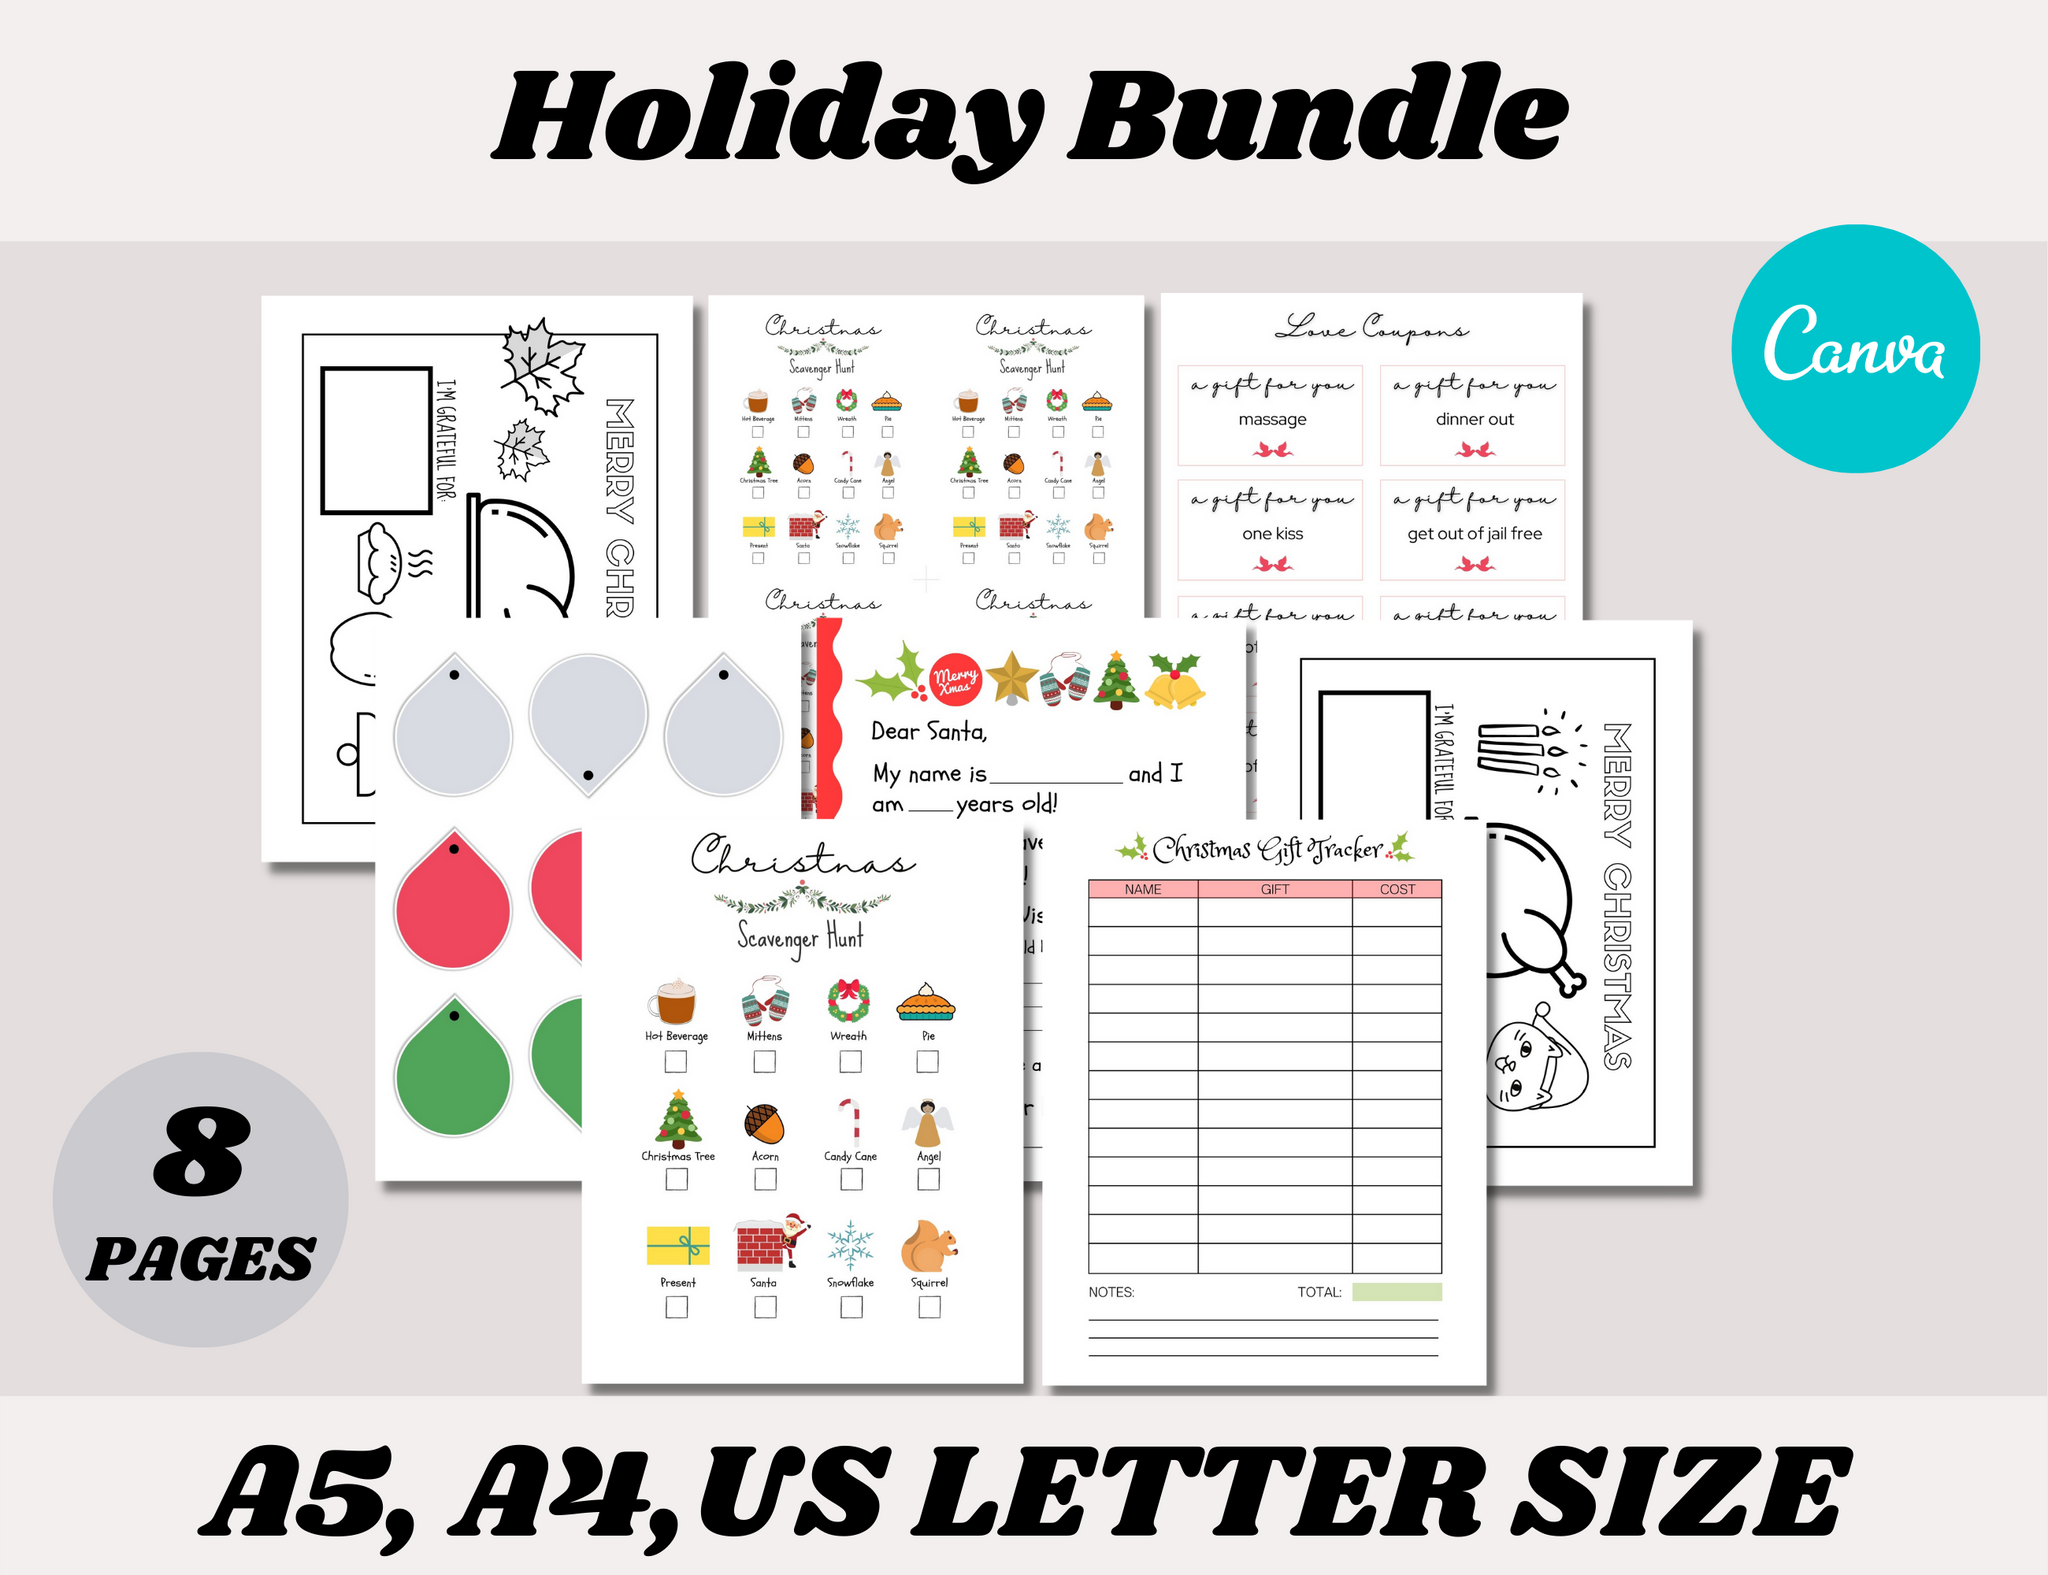 Holiday Canva Template Bundle (OK for commercial use)